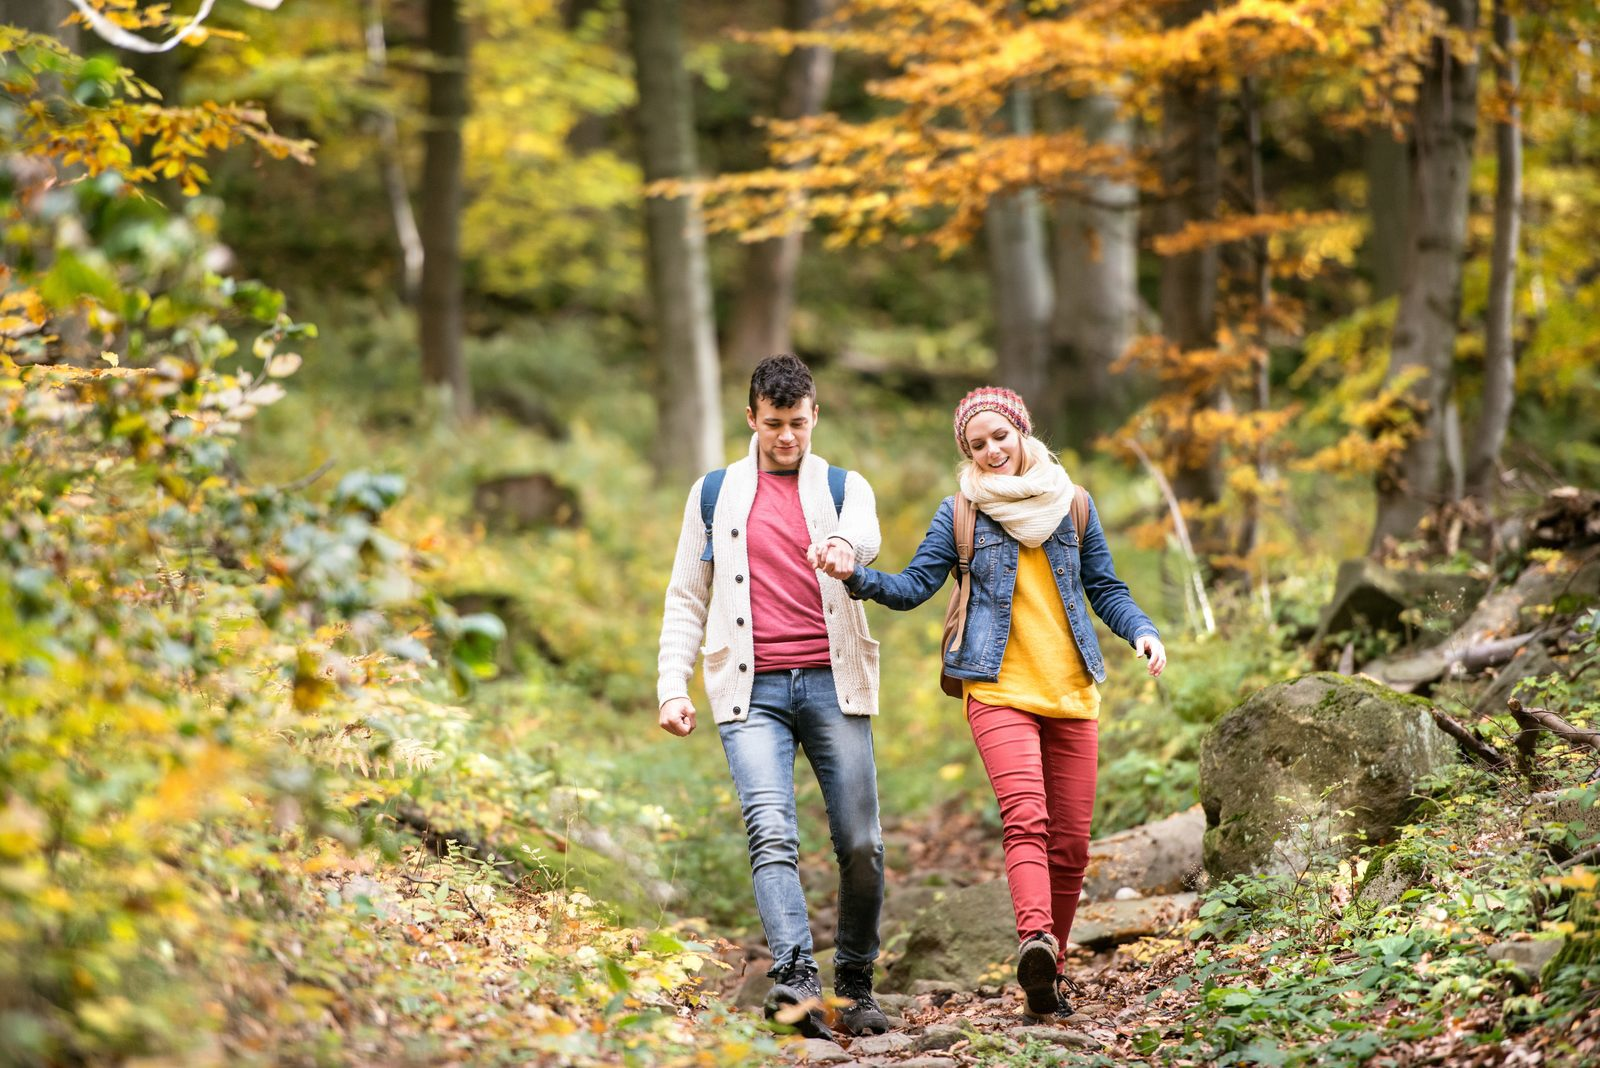 Experience autumn with EuroParcs